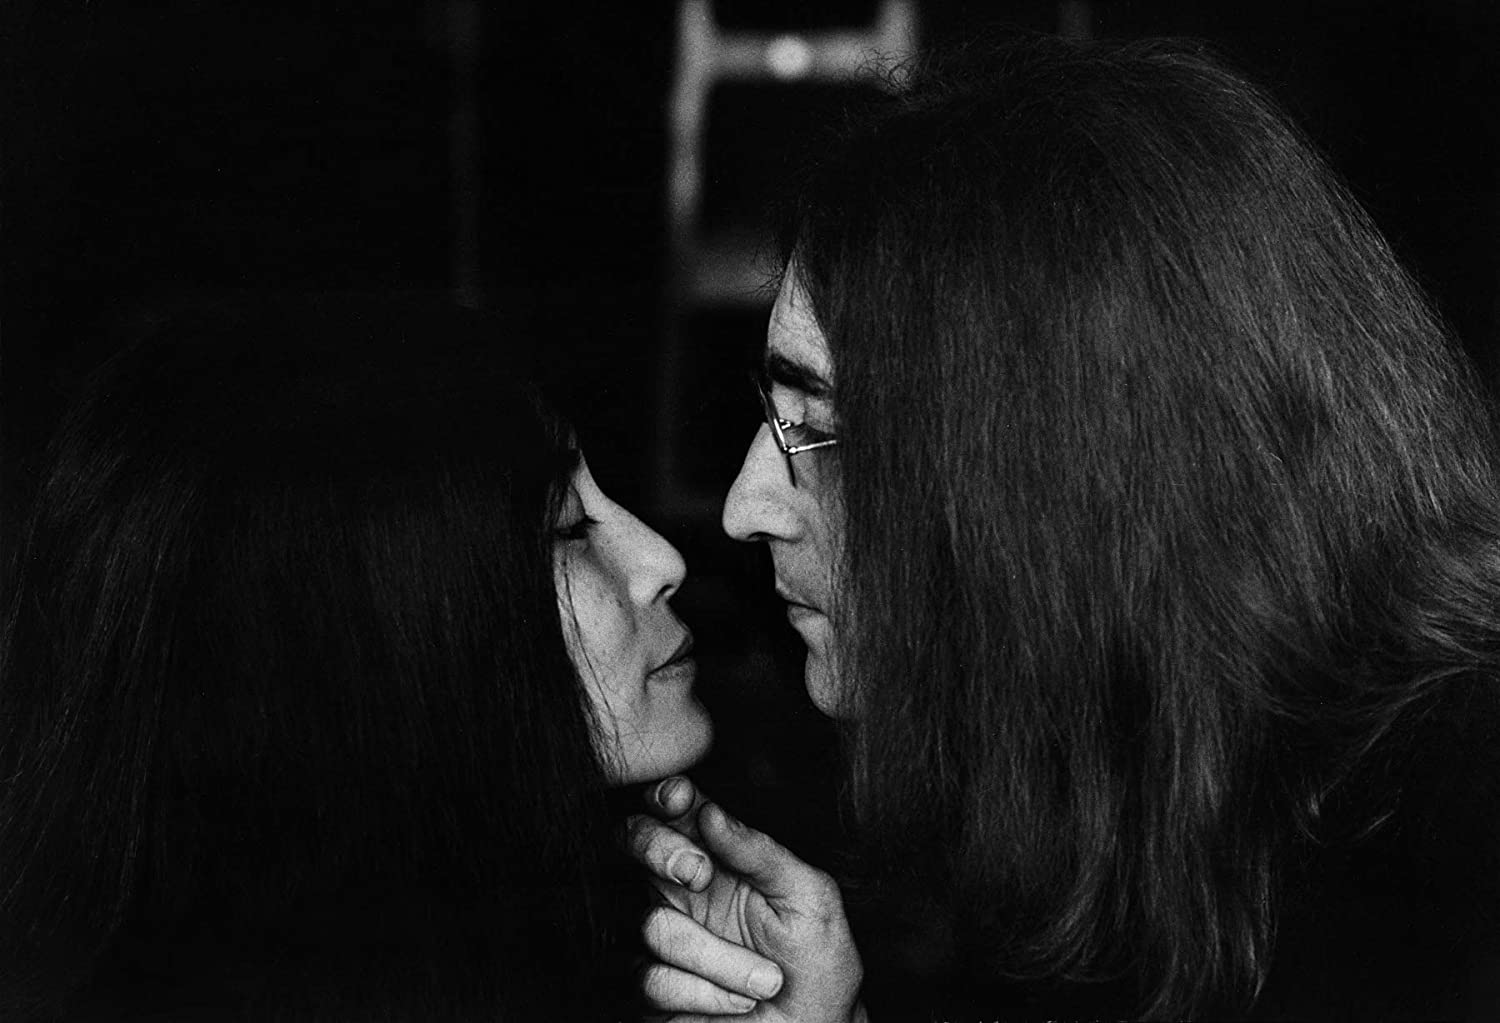 Amazon Com Celebrity Vault John Lennon And Yoko Ono The Kiss An Archival Print 20 X 16 Posters Prints